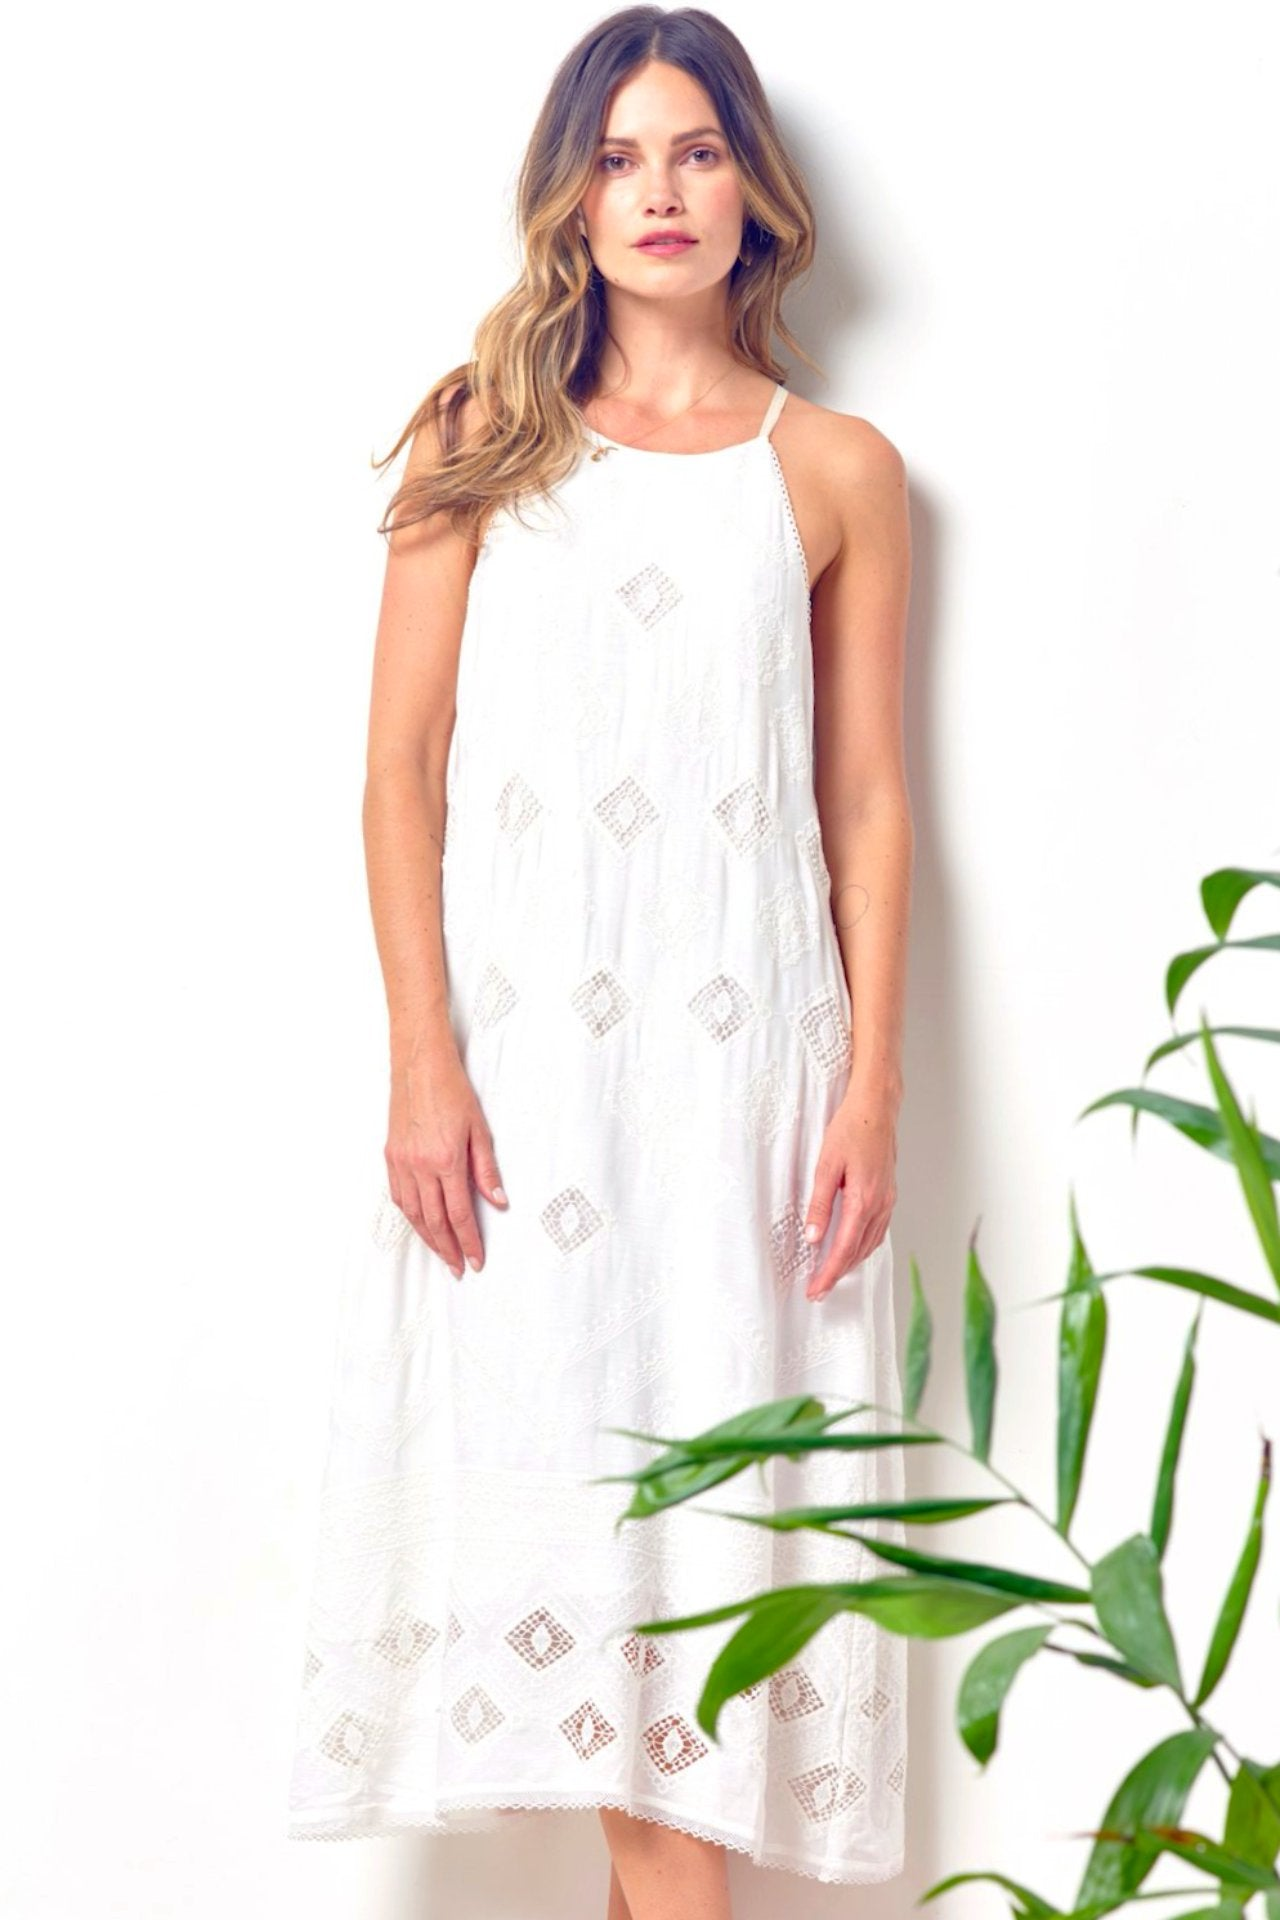 32deb38d1 ZOLA Embroidered Eyelet Halter White Dress   CLC by Corey Lynn Calter